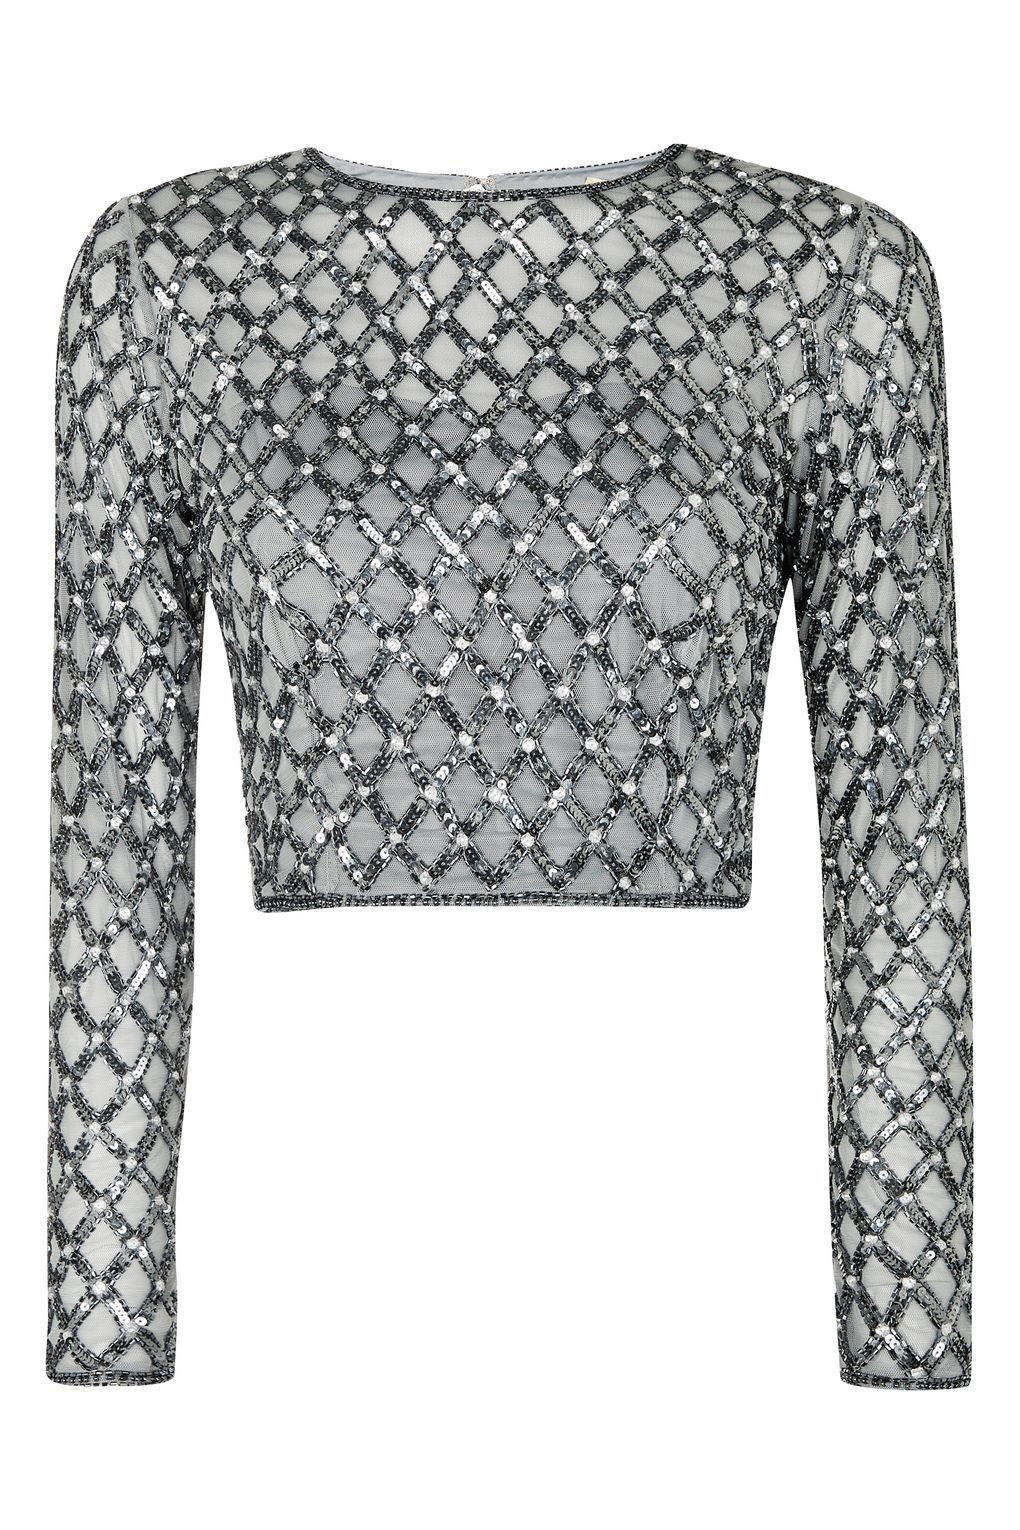 a45b0b3866ddc   Carmel Embellished Crop Top by Lace   Beads - T-Shirts - Clothing -  Topshop Europe